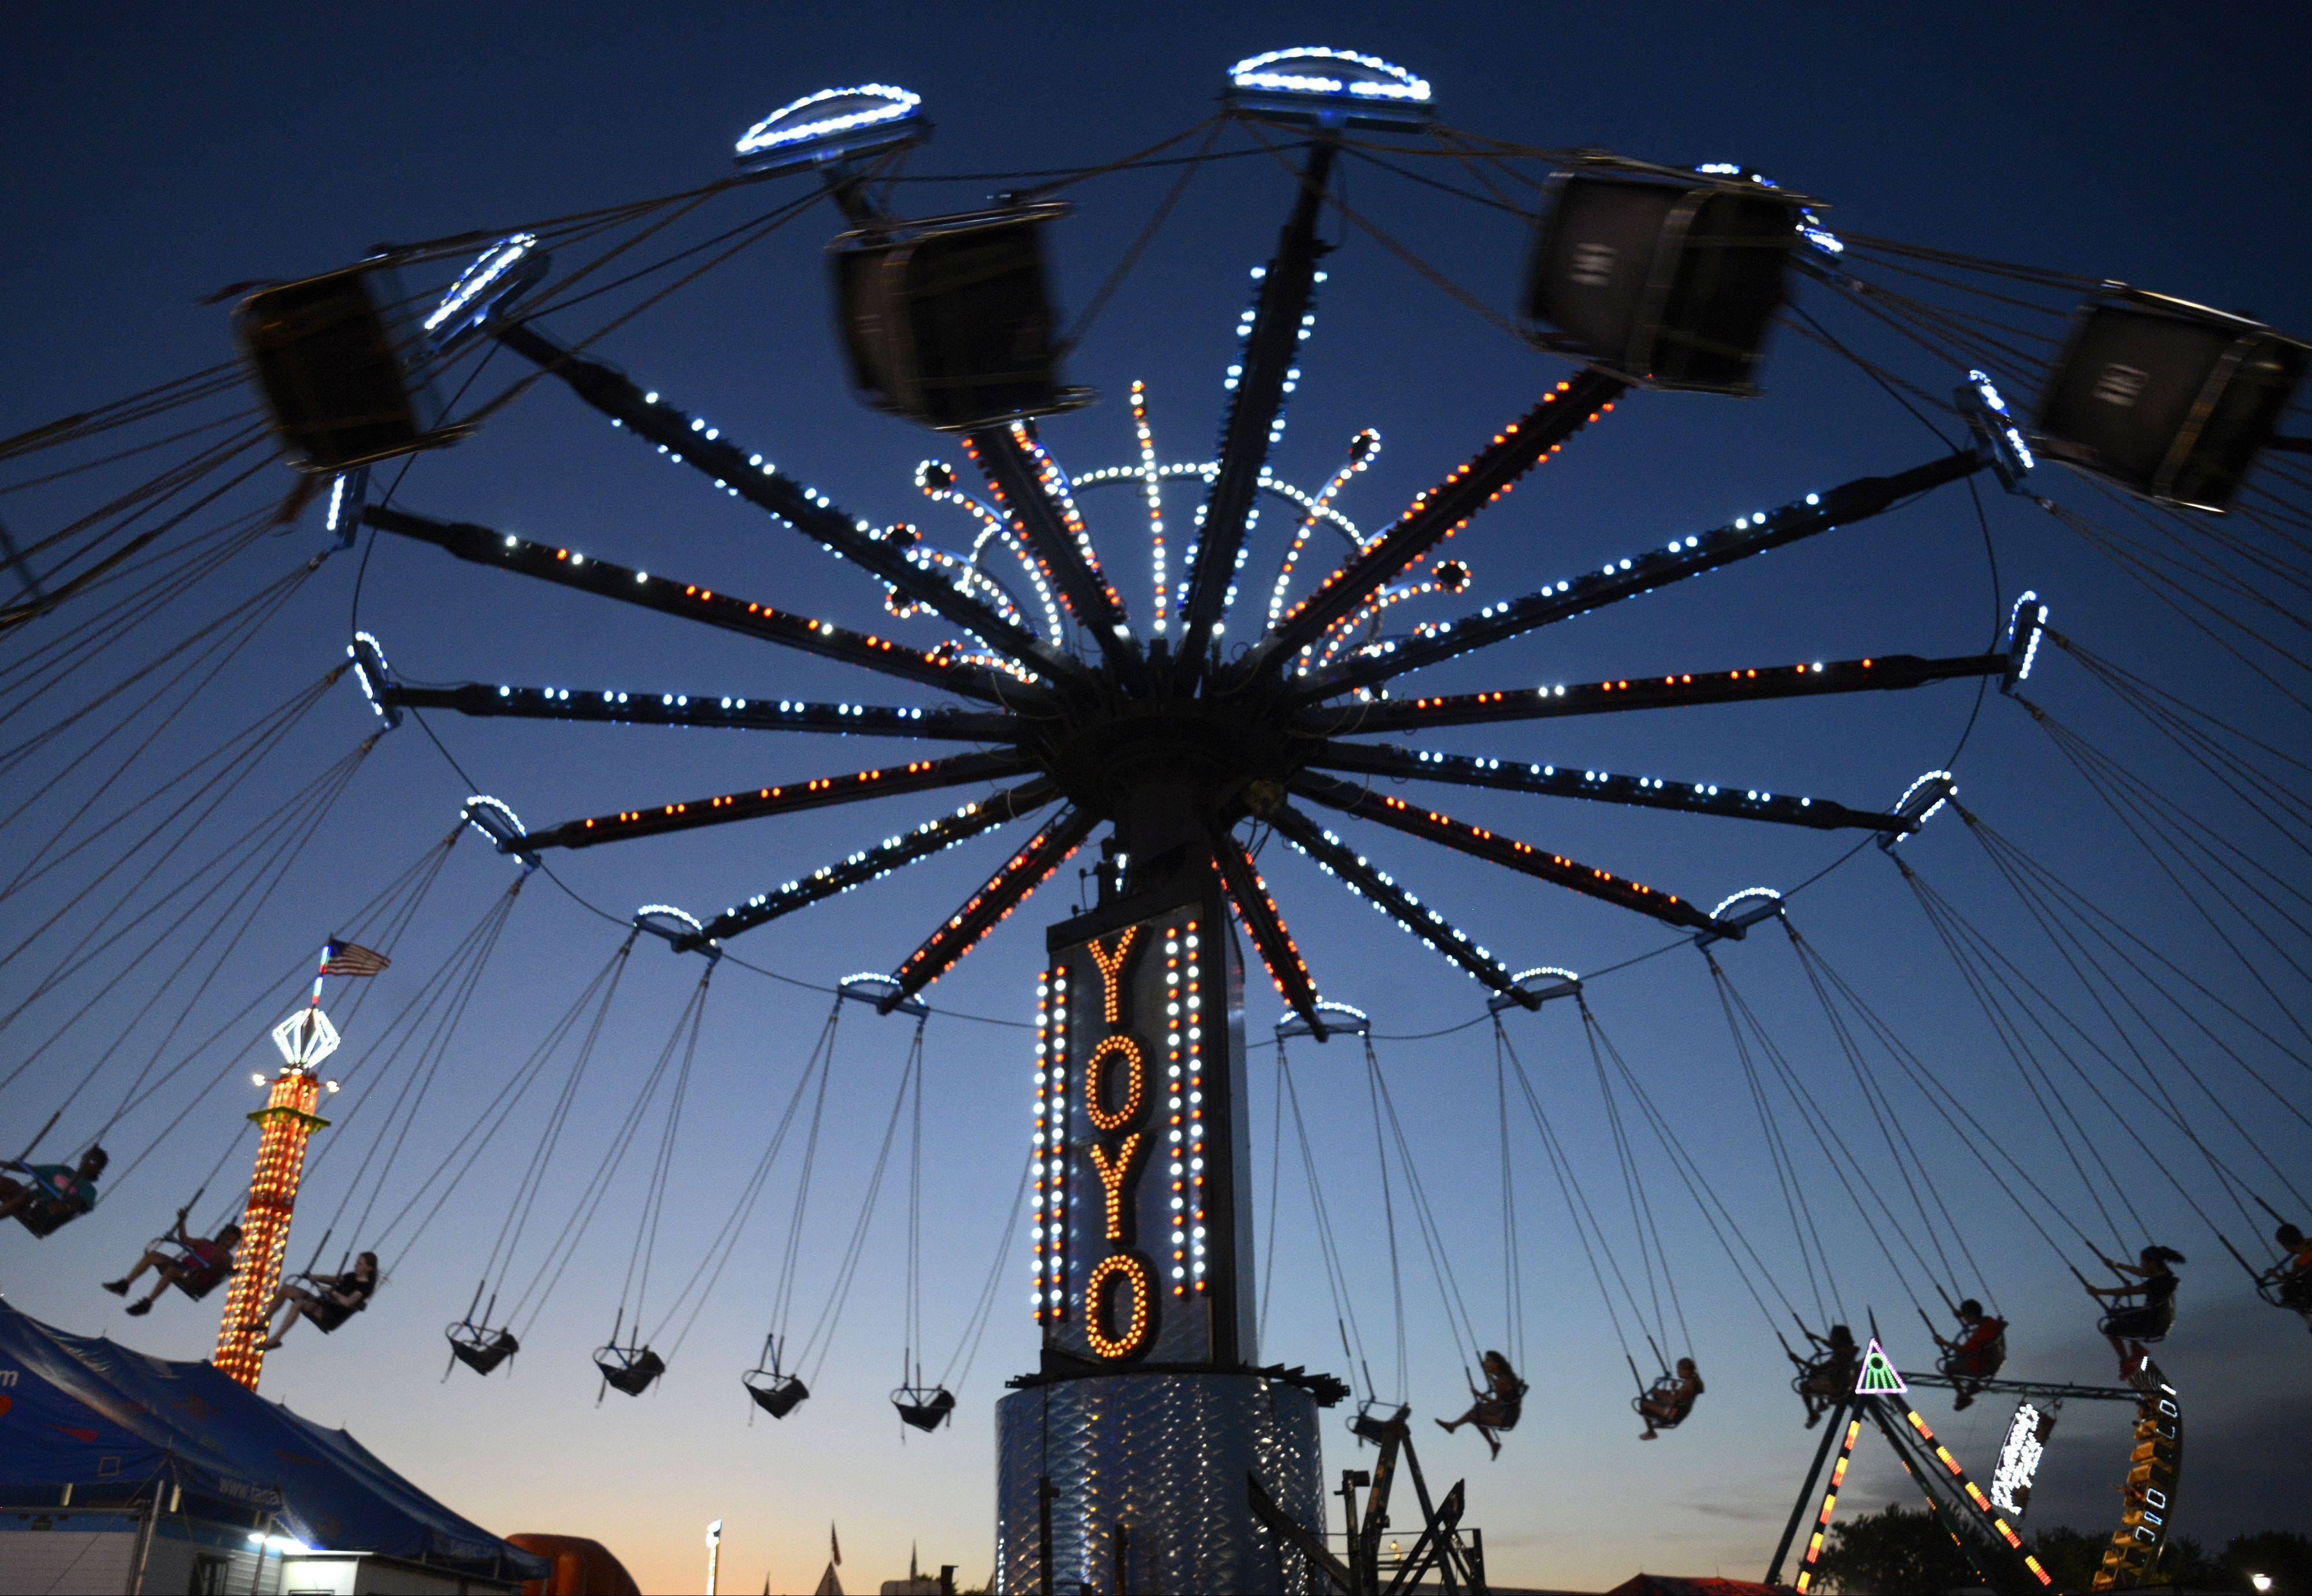 The Kane County Fair opens at the Kane County Fair Grounds in St. Charles on Wednesday. Discounted ride wristbands, coupons for entrance fees and other promotions are available on the fair's $START_URL$website;http://kanecountyfair.com/$STOP_URL$.